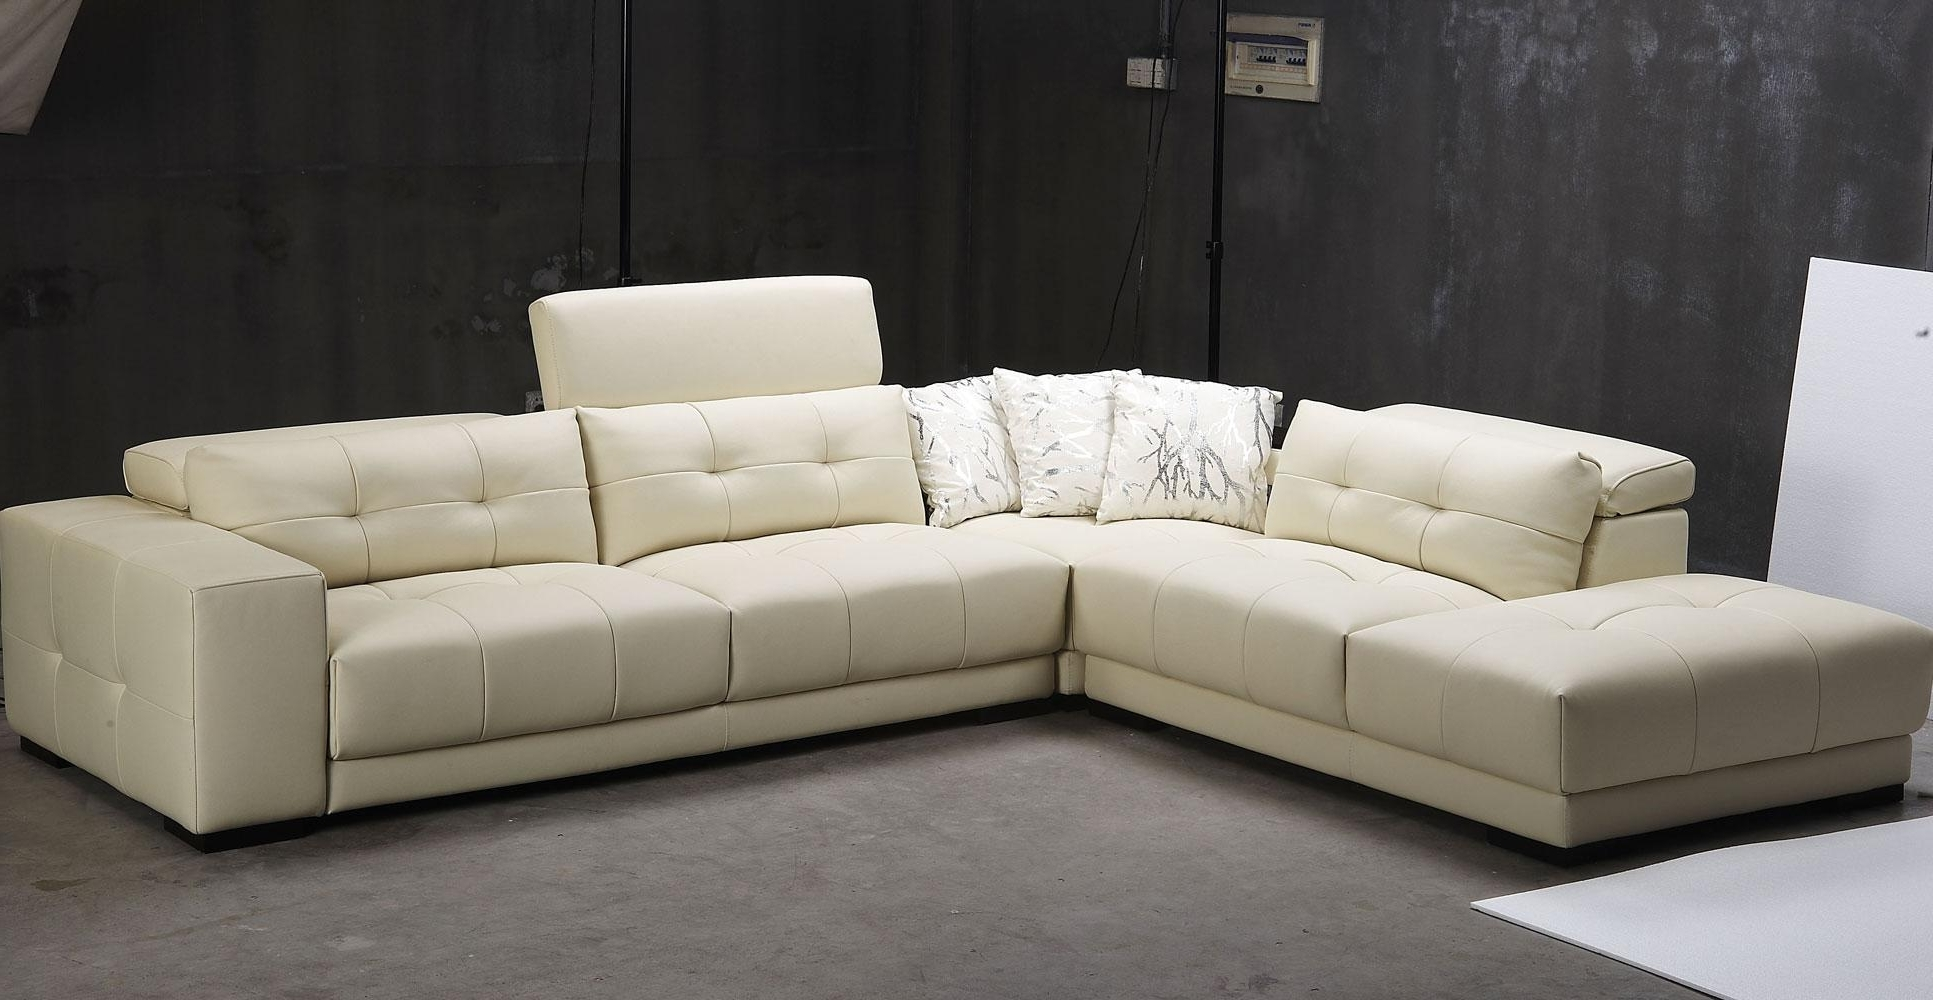 Current Miami Sectional Sofas Throughout Sofa : Modern Sectional Sofas Miami Home Design Furniture (View 15 of 20)